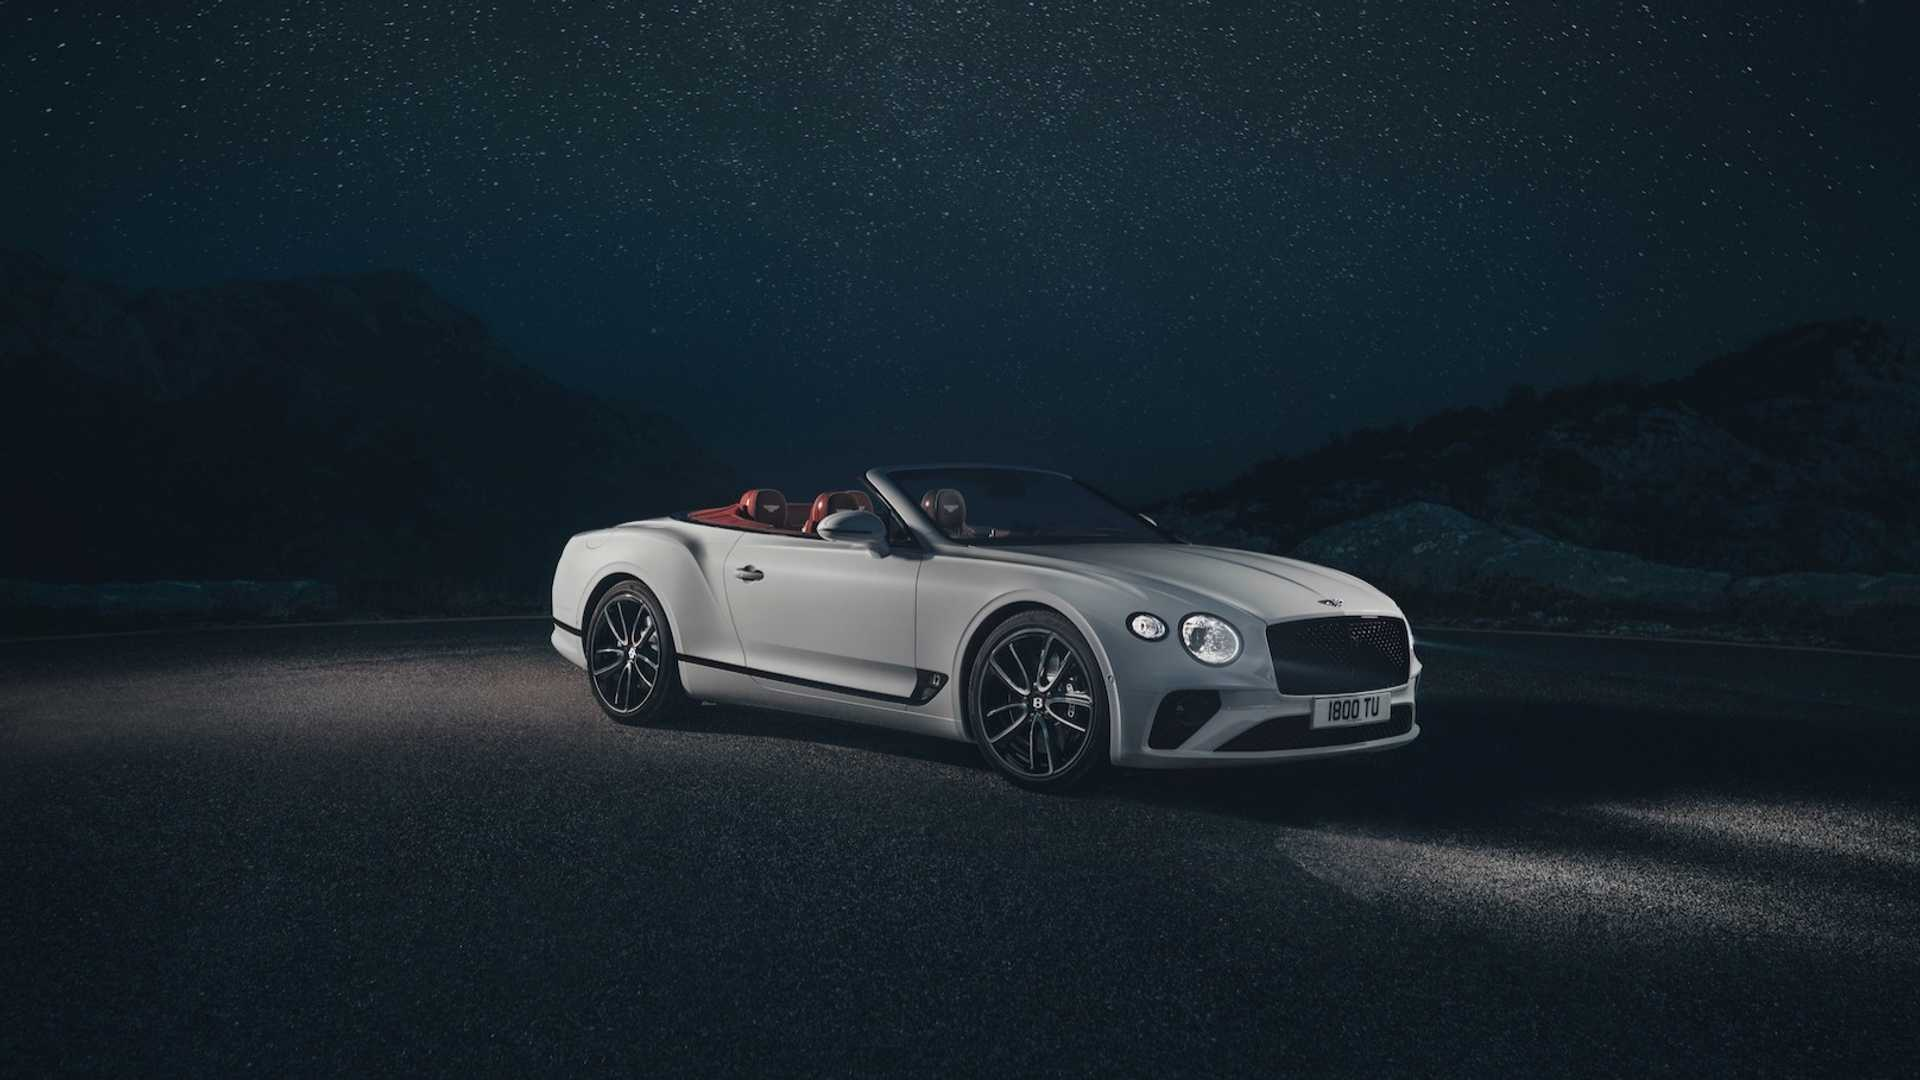 2019-bentley-continental-gt-convertible-unveiled-207-mph-luxury-droptop (6)